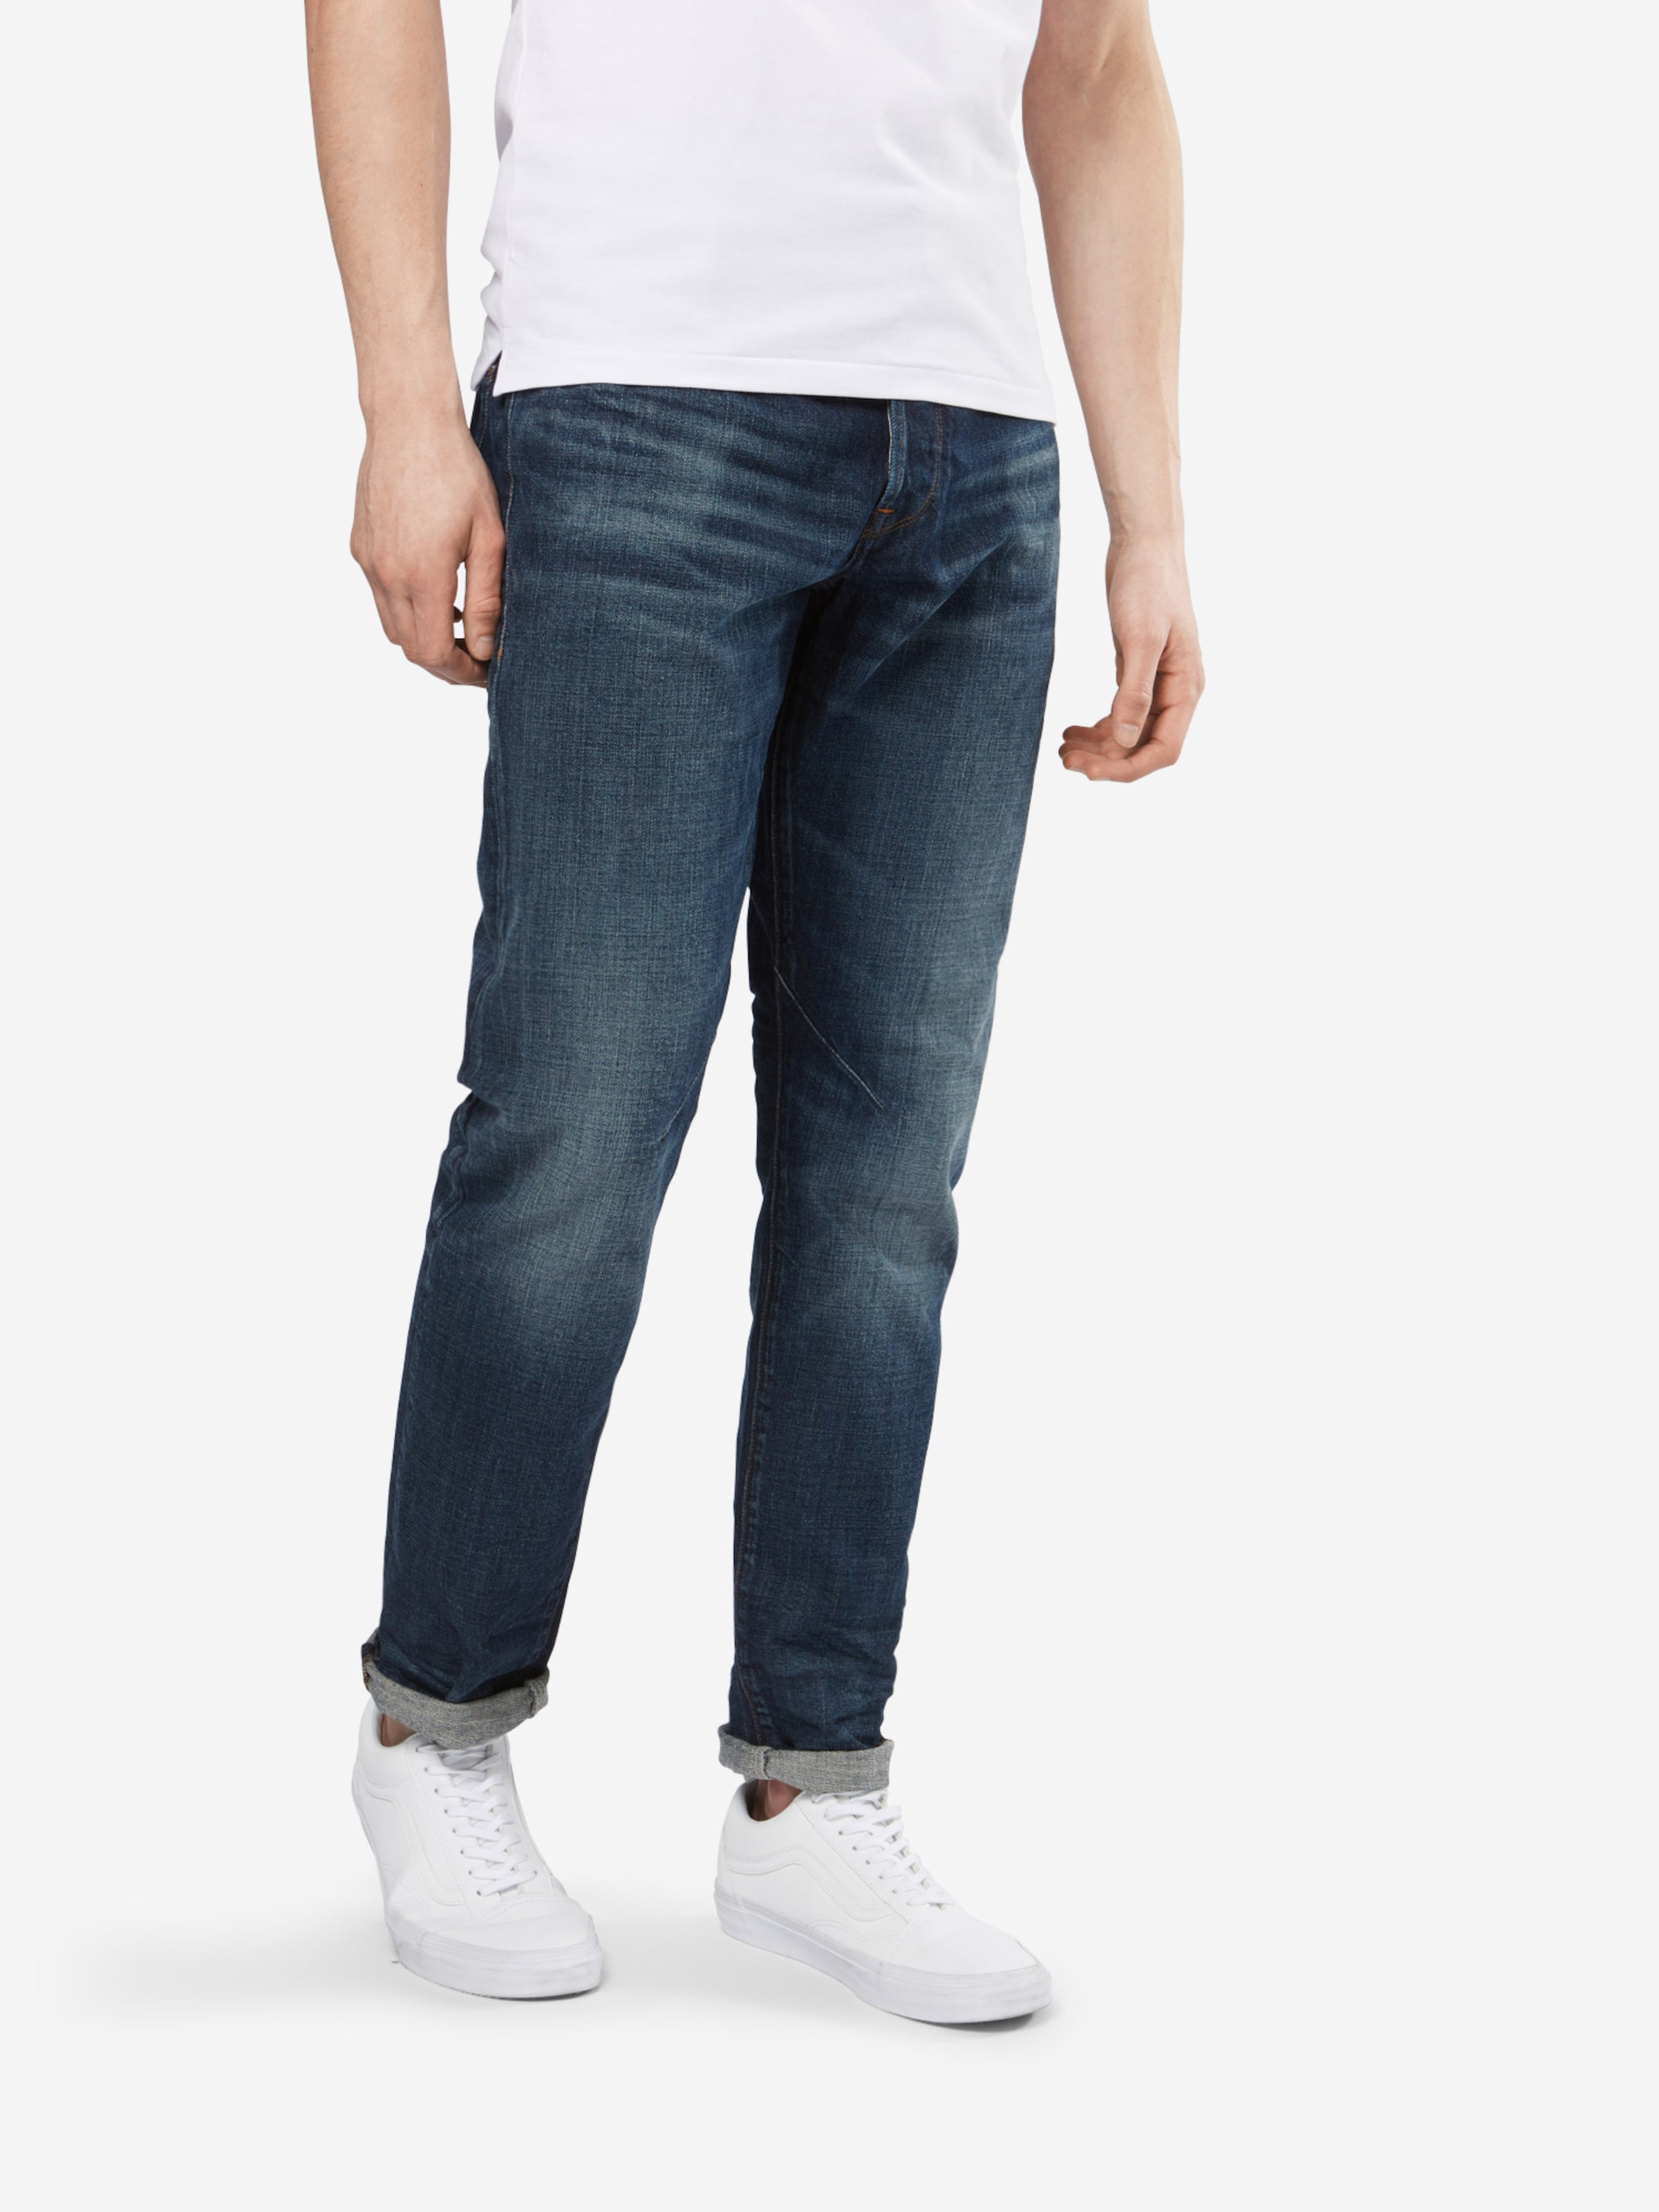 Denim staq pkt Bleu Raw Tapered' En G star 'd 5 Jean PkZuwTiOX